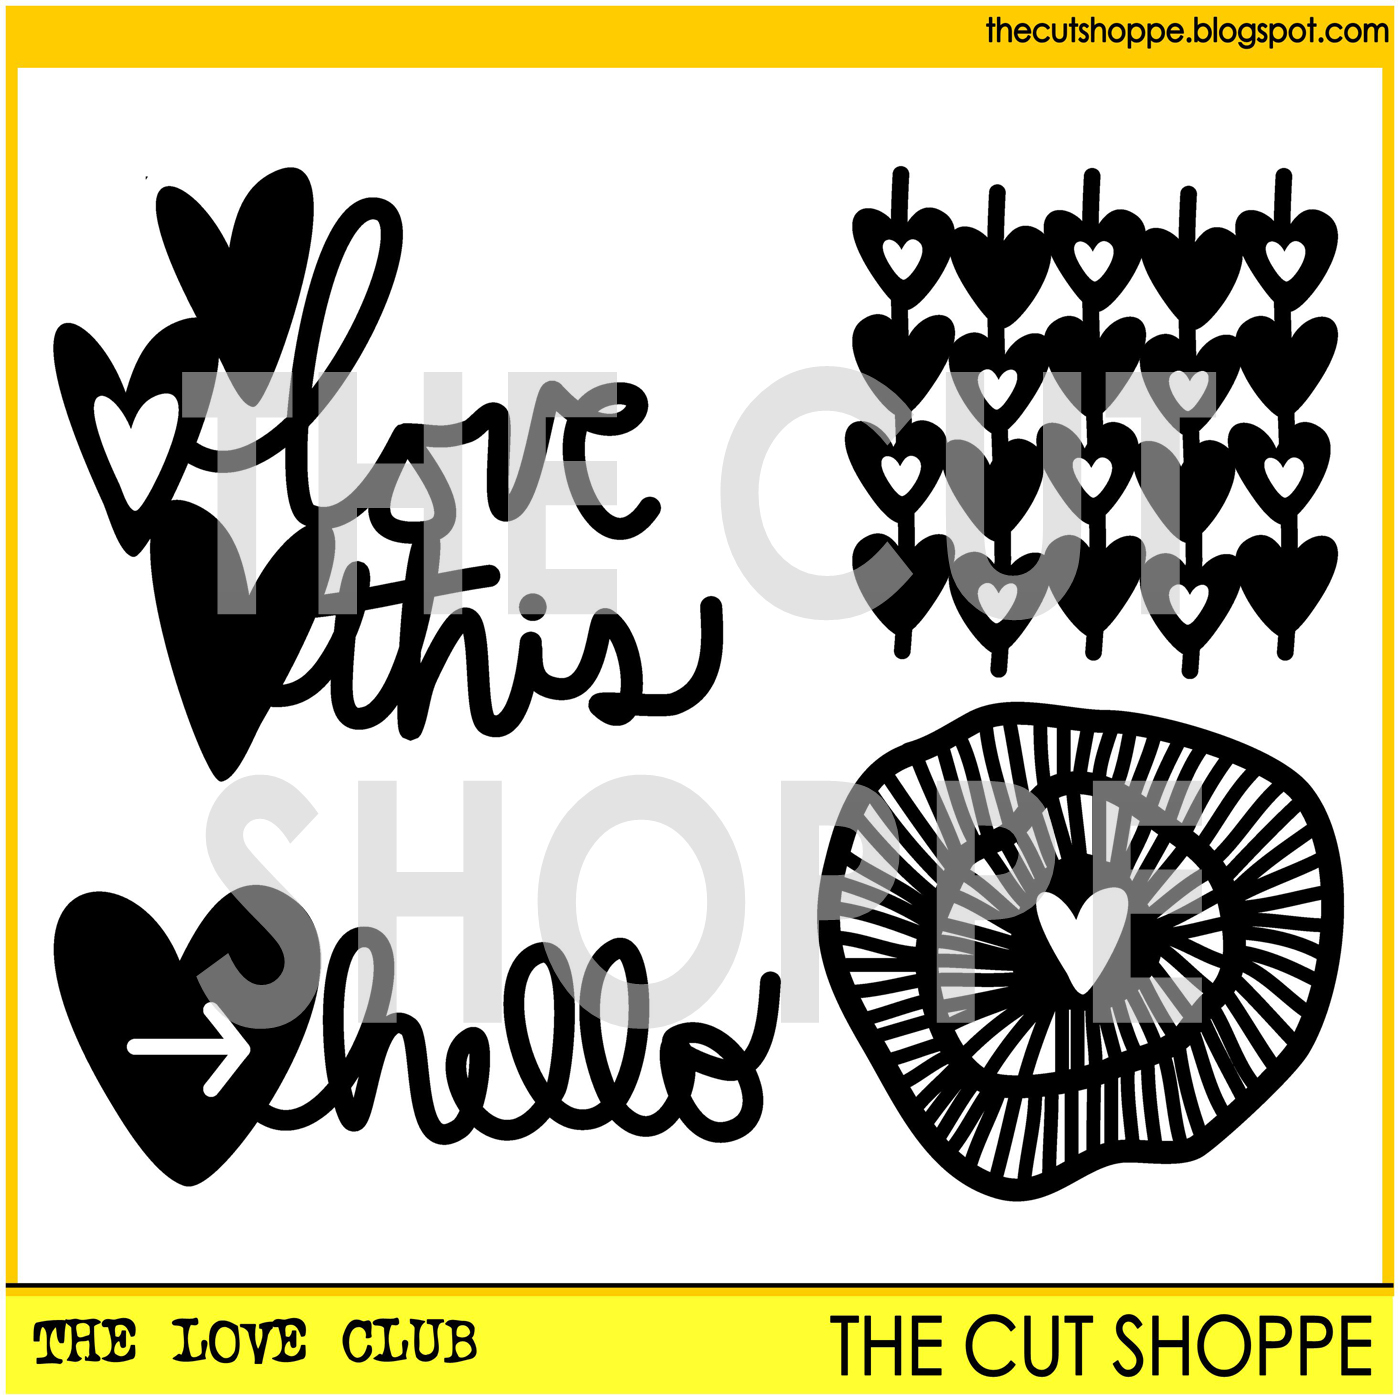 https://www.etsy.com/listing/222281822/the-love-club-cut-file-consists-of-4?ref=shop_home_active_3